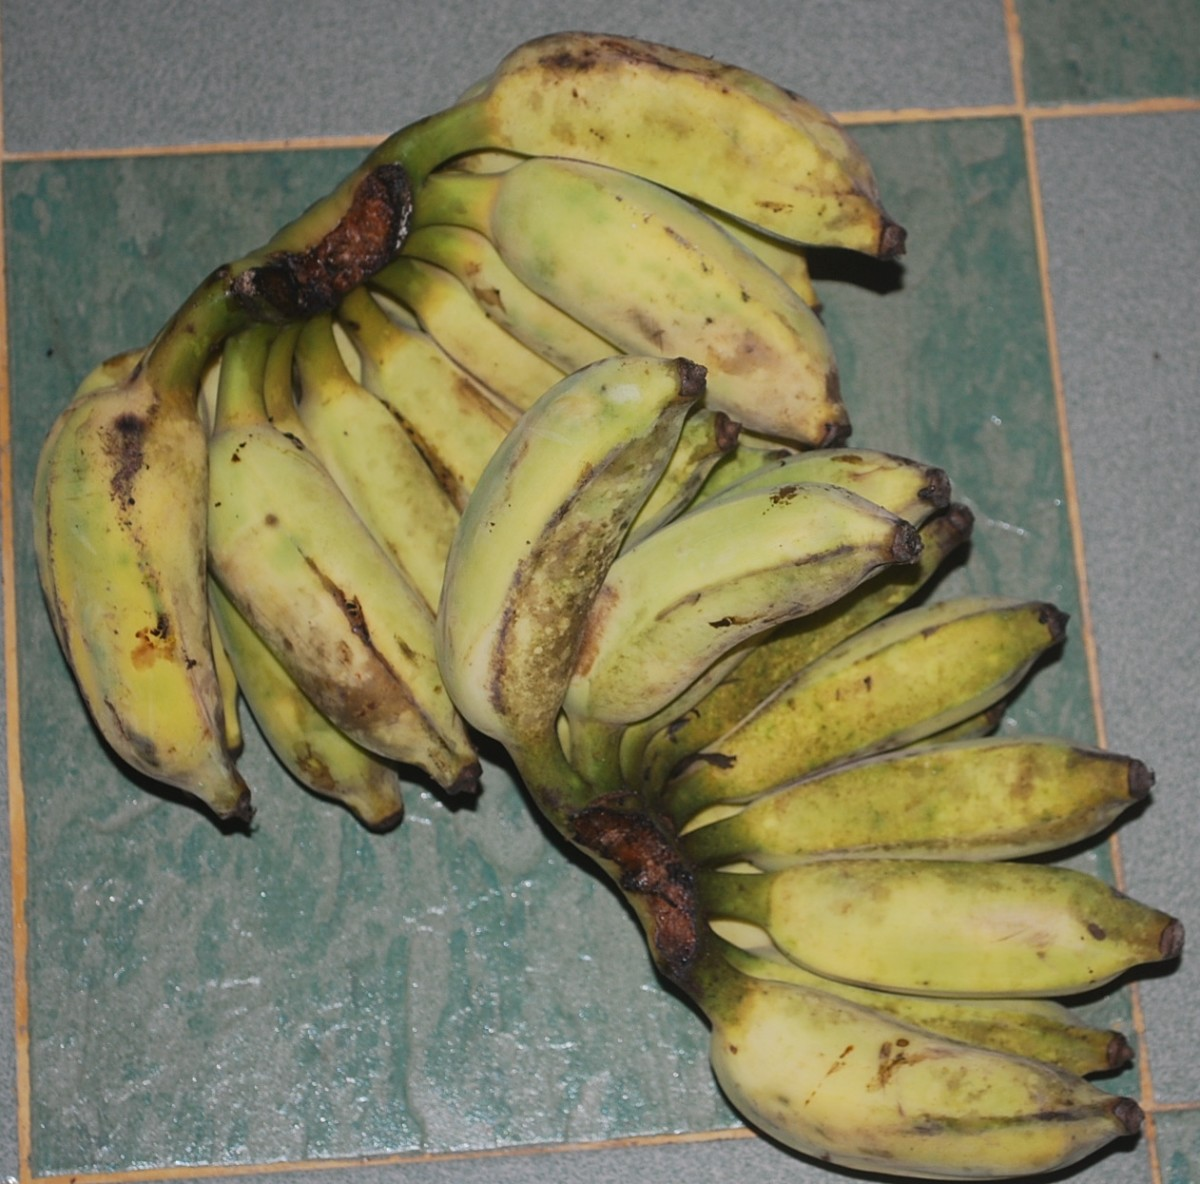 Pisang Awak, a not so popular banana variety as it has seeds that can be a nuisance when you eat them as banana fritters